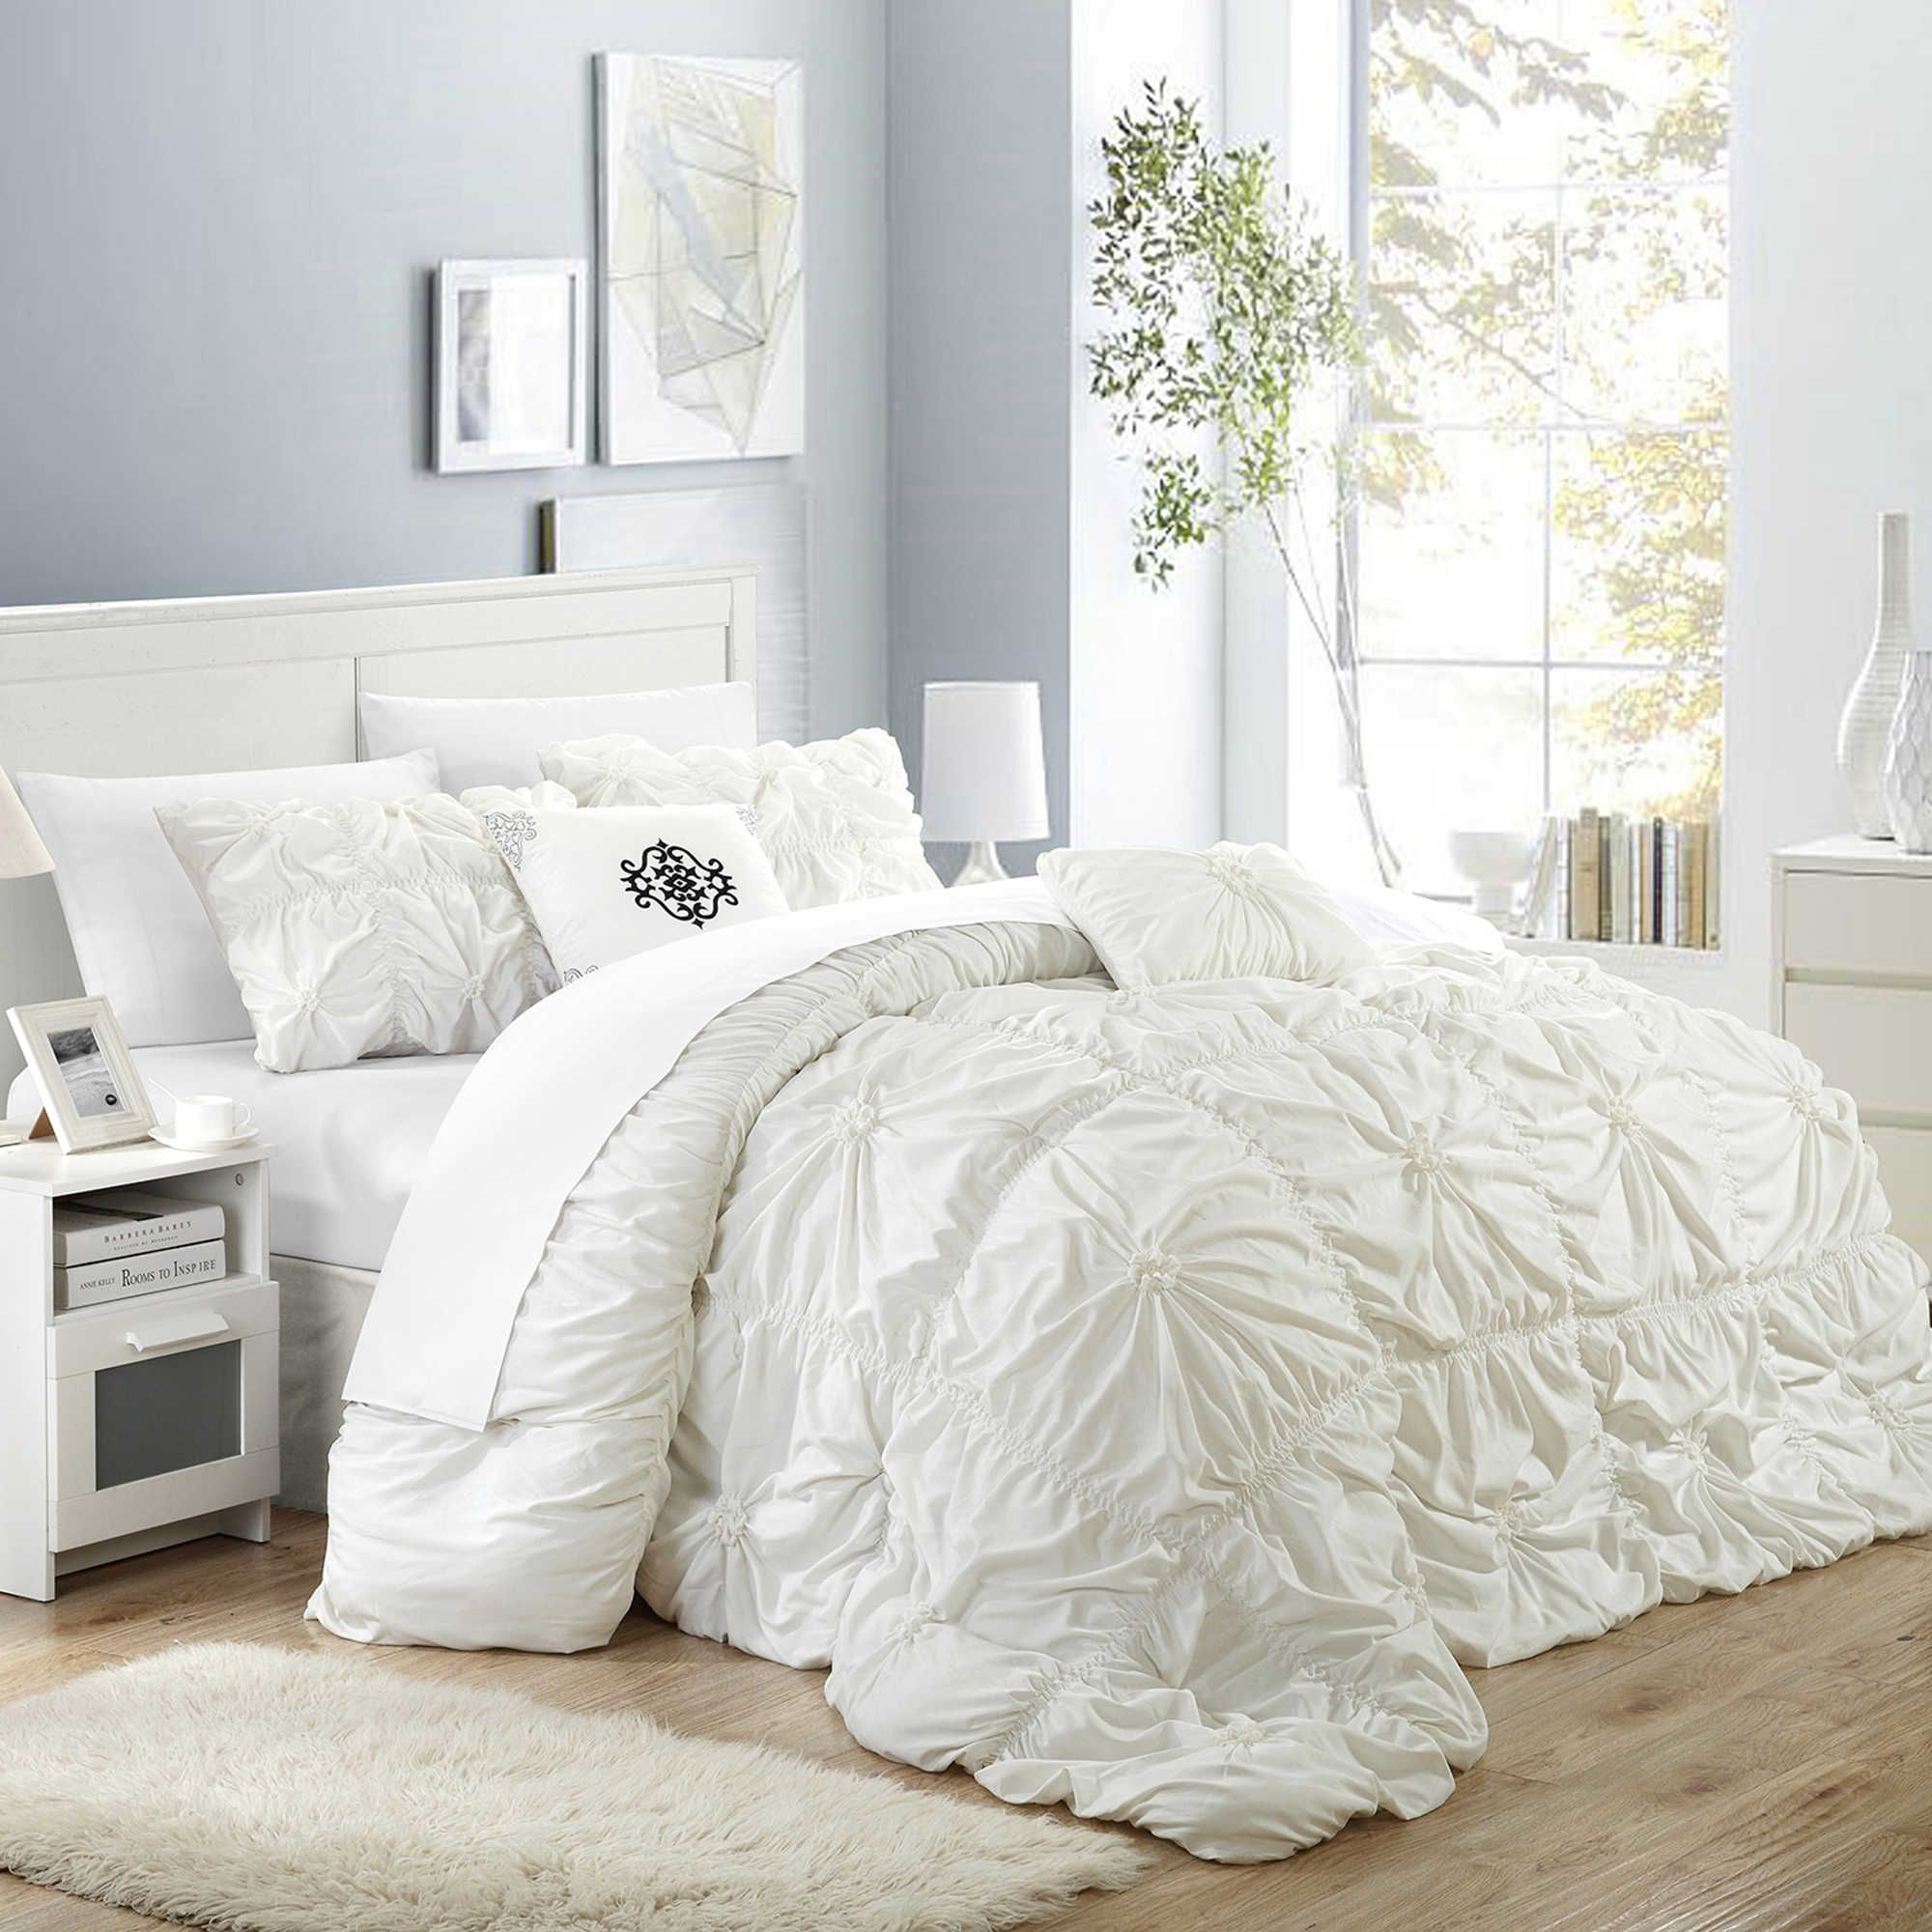 Chic Home Hilton 6 Piece Comforter Set Comforter Sets Chic Bedroom Shabby Chic Bedrooms